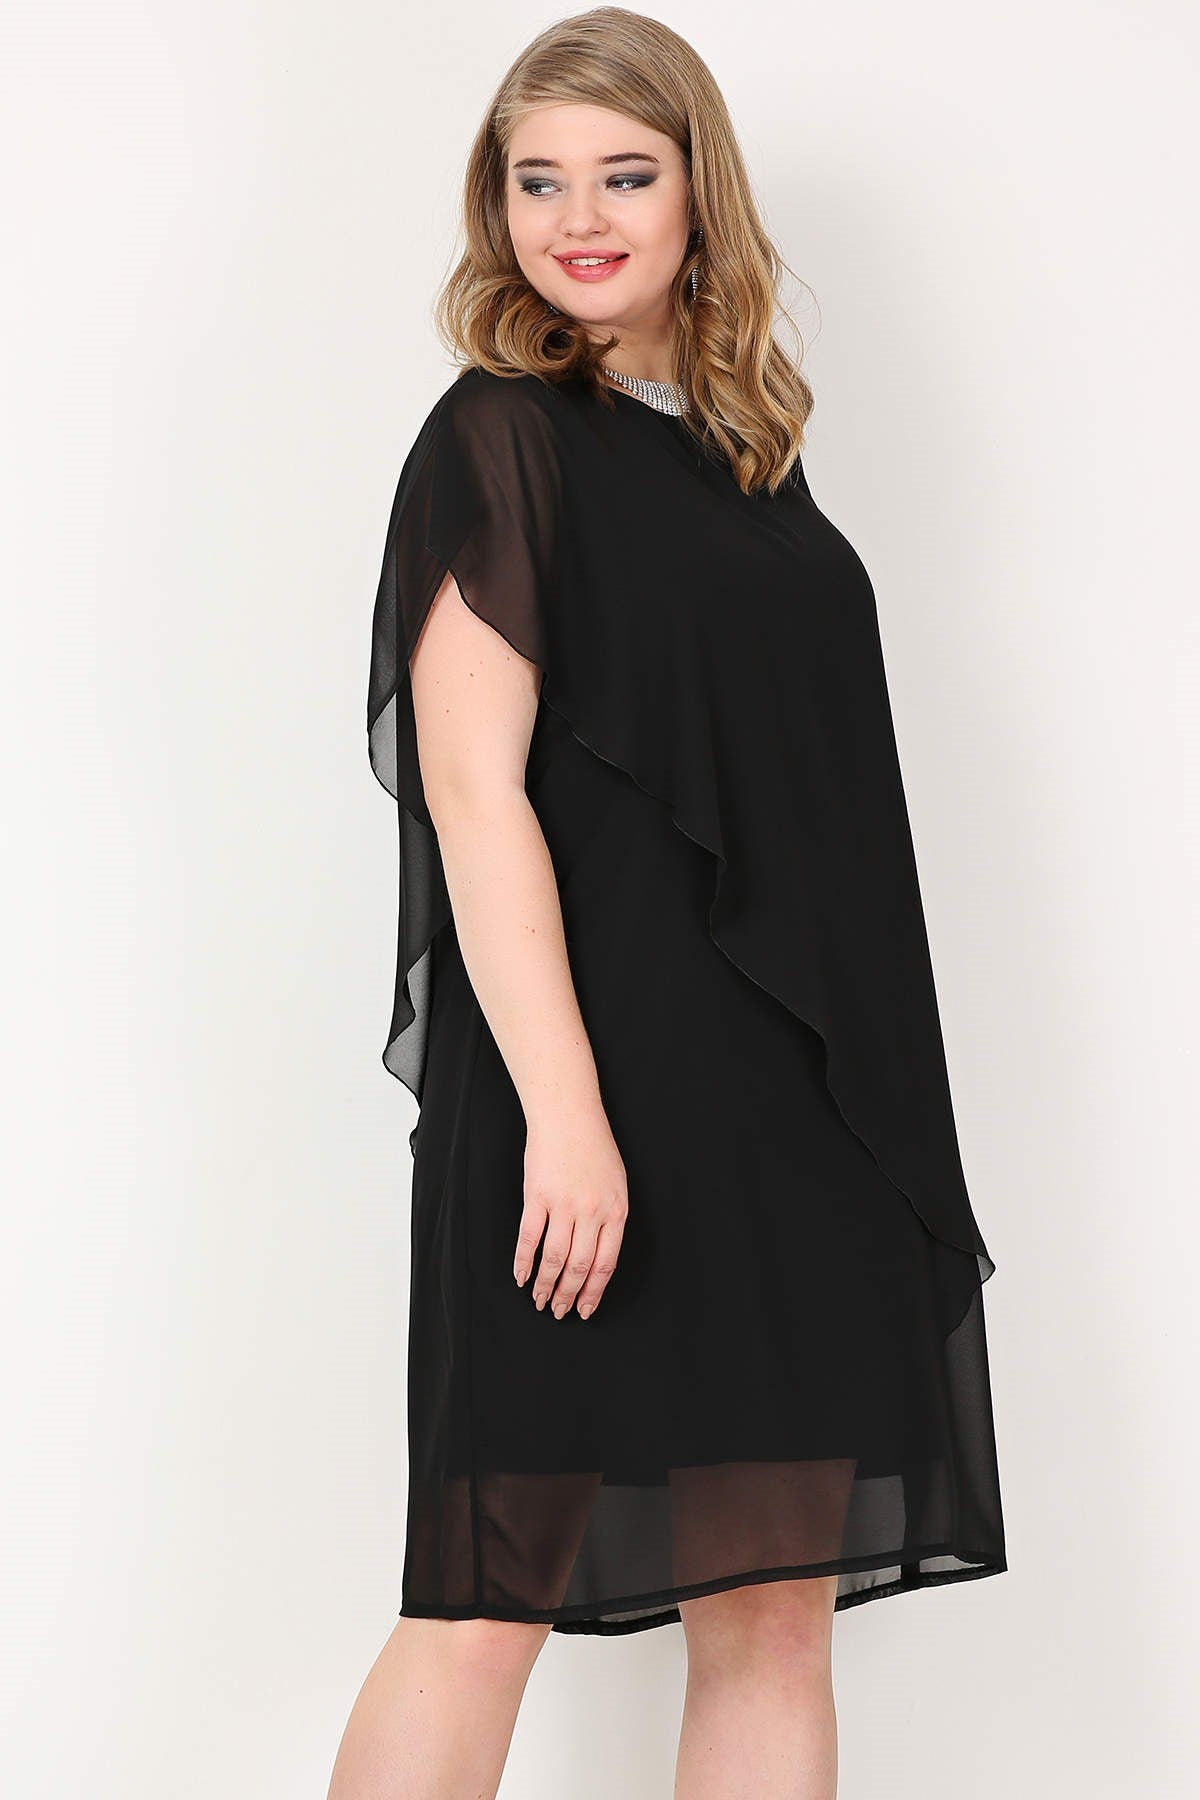 Women's Oversize Chiffon Evening Dress